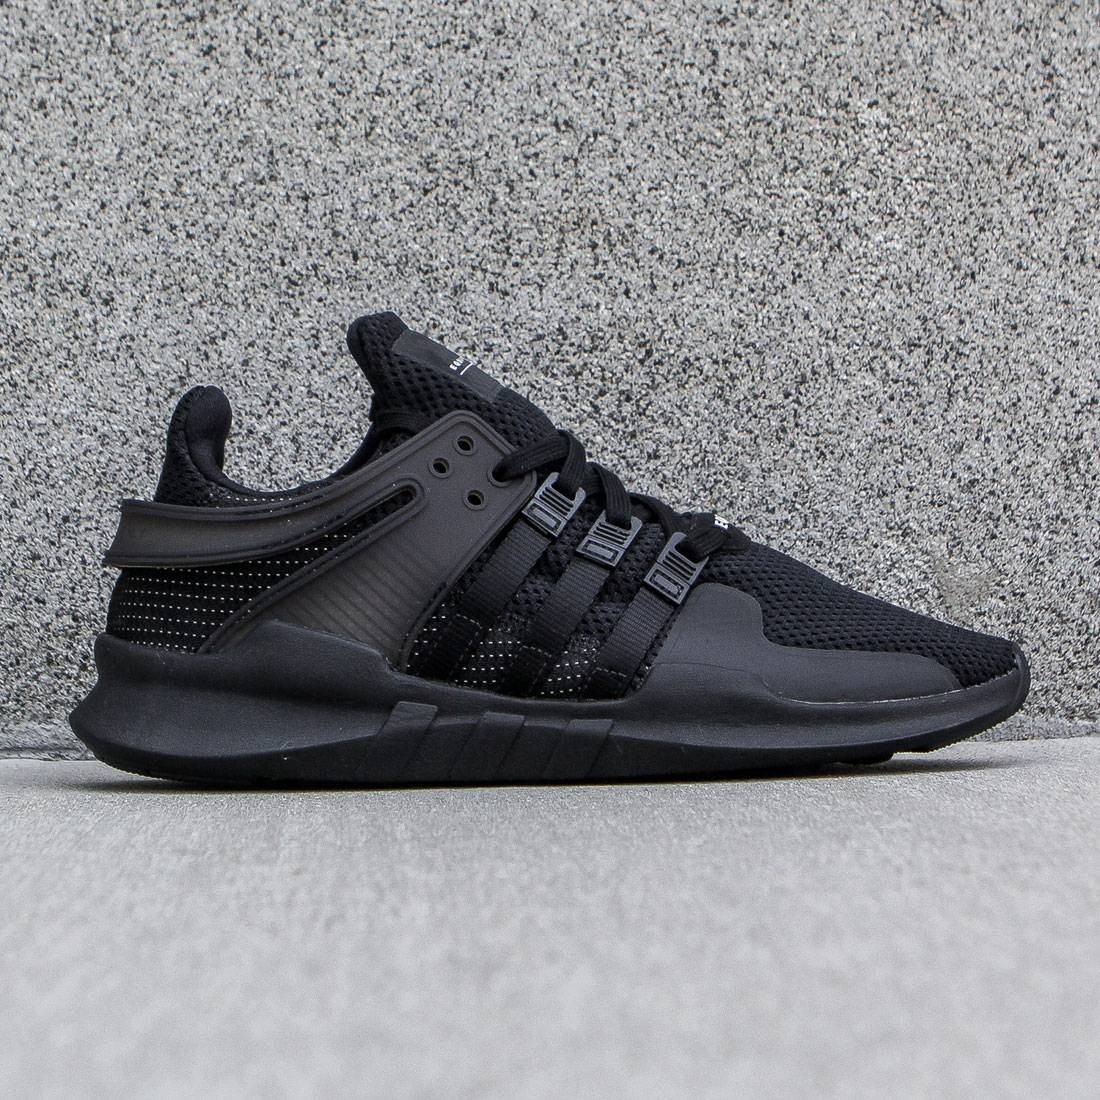 low priced 21e07 d1b0f adidas EQT Support 9317 Core Black DTLR